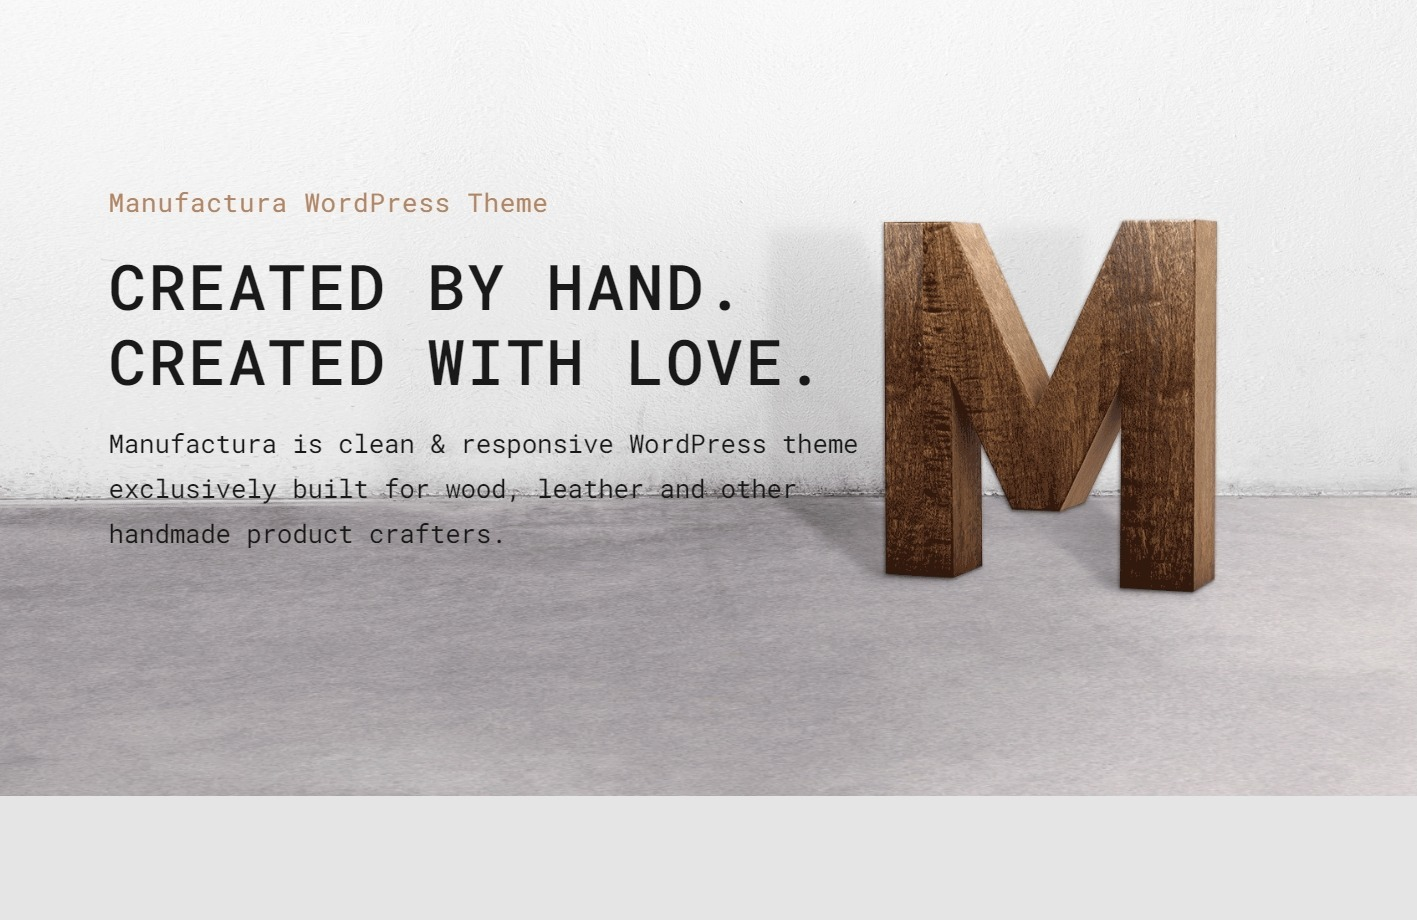 Manufactura Theme for Hand Crafted Products